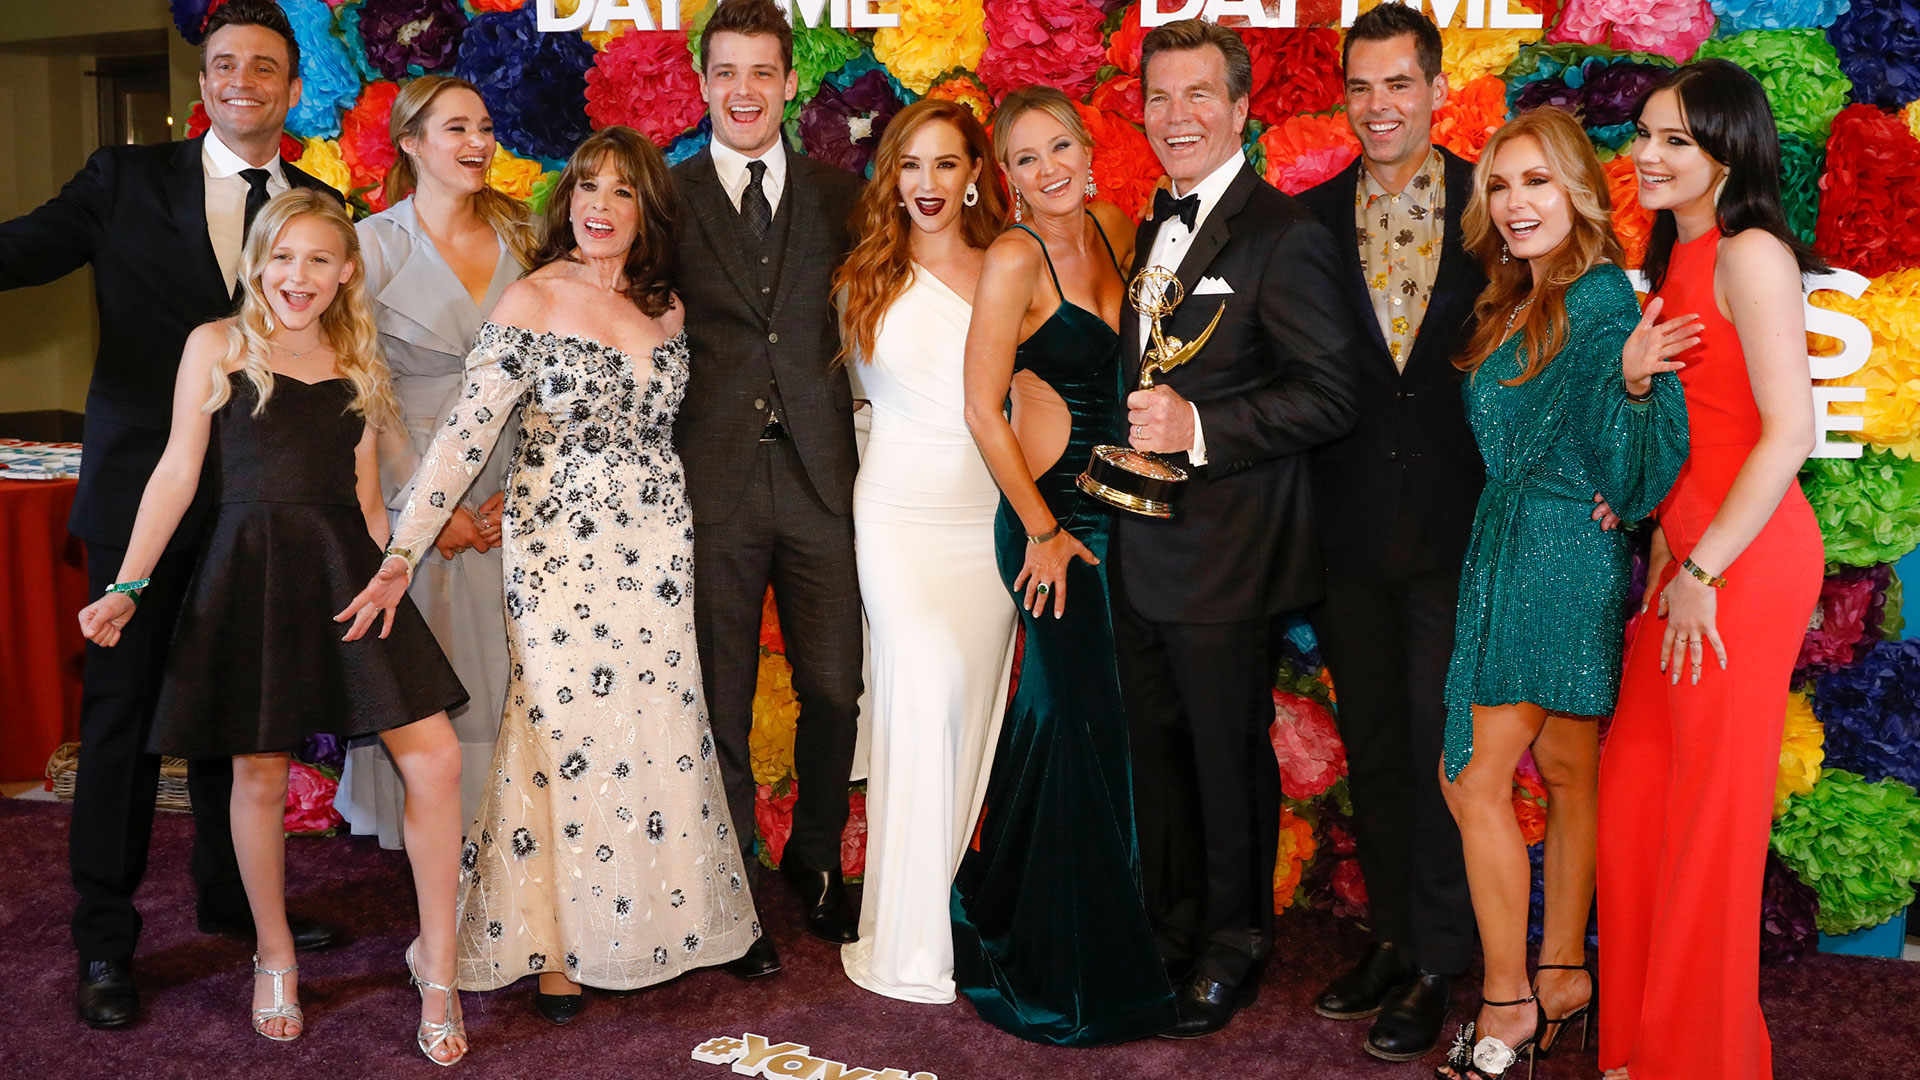 The cast of Y&R celebrates success and dishes on their dreamy Daytime gigs